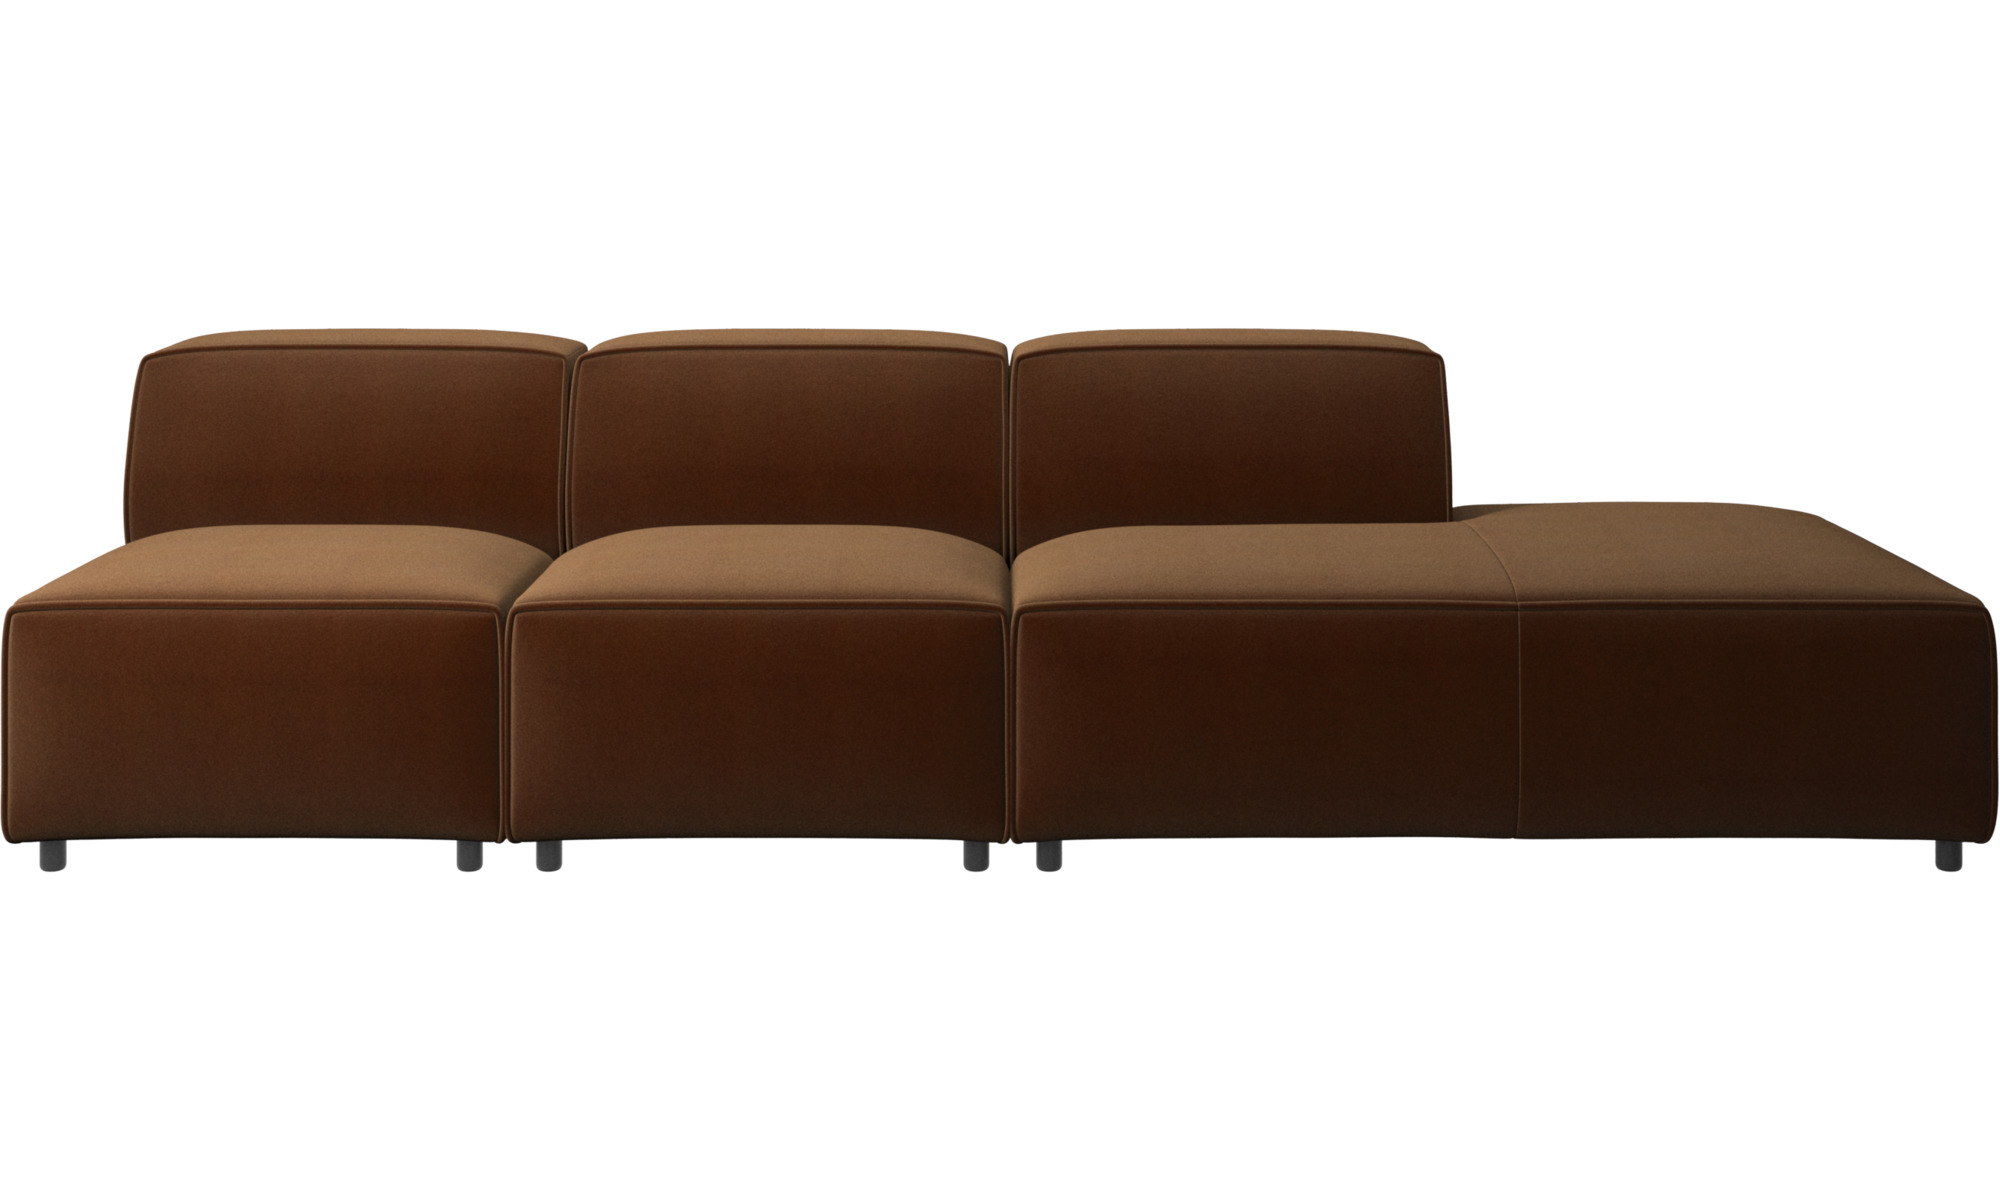 Modular Sofas Carmo Sofa With